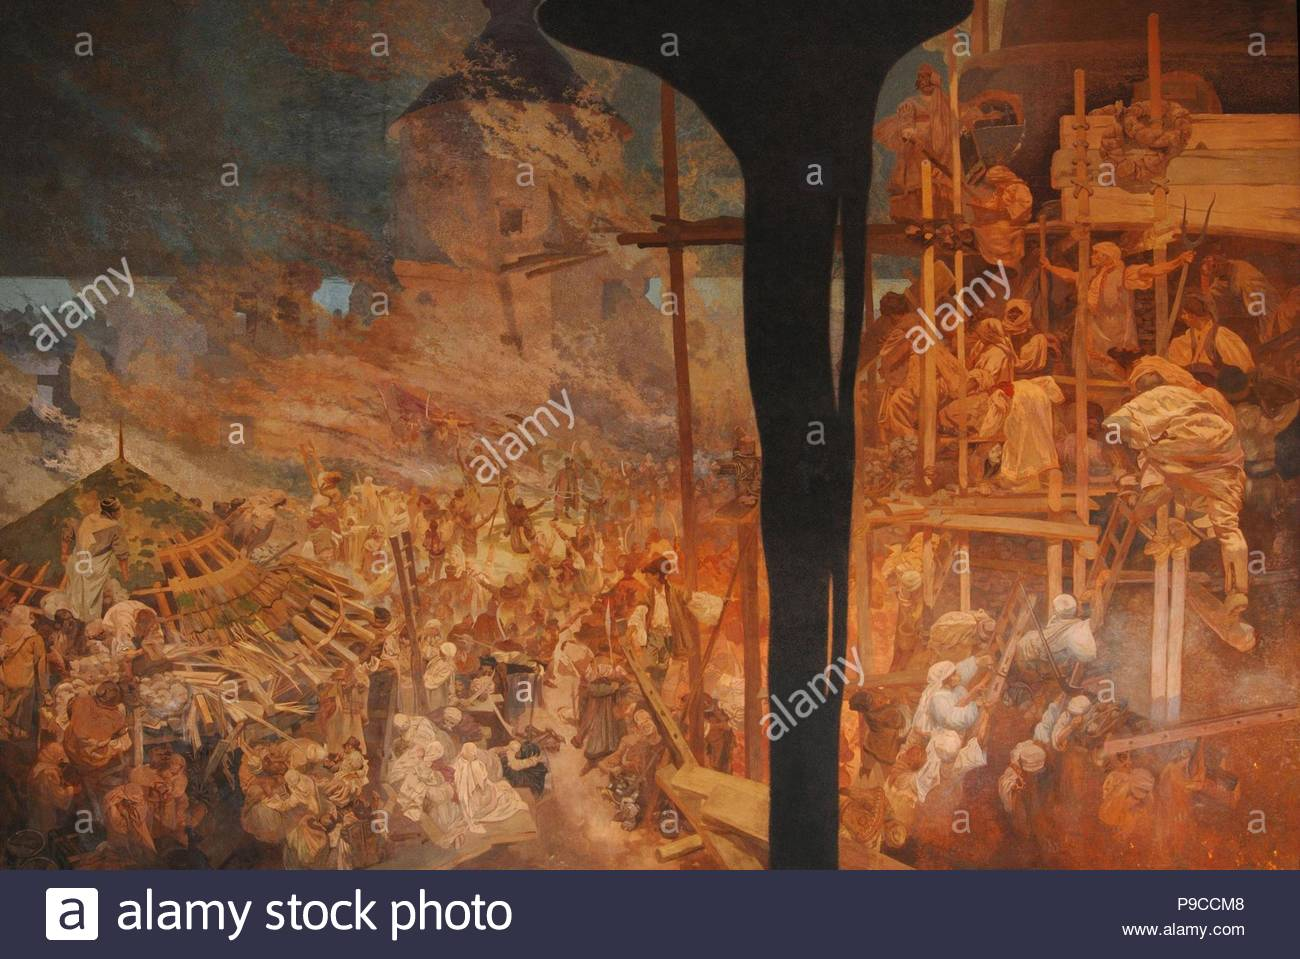 The Defense of Sziget against the Turks by Nicholas Zrinsky (The cycle The Slav Epic). Museum: City Gallery Prague. - Stock Image